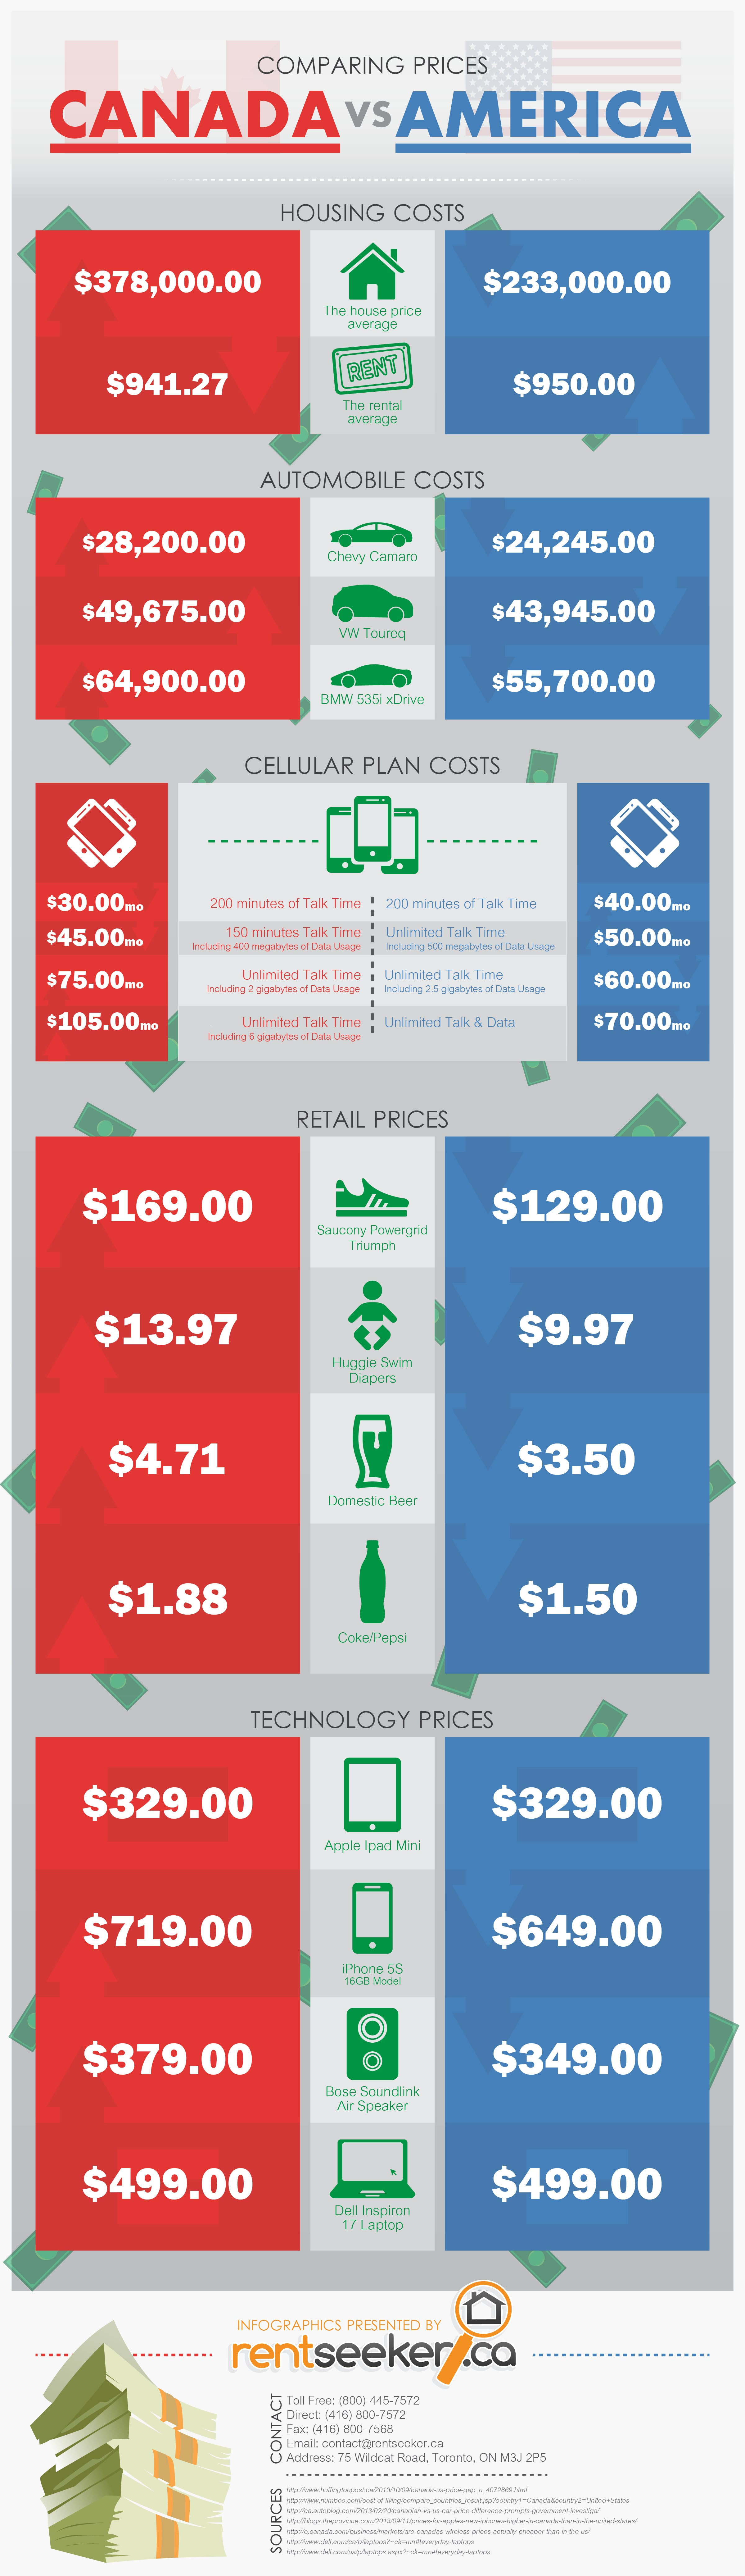 Canada vs. U.S. Pricing by RentSeeker.ca